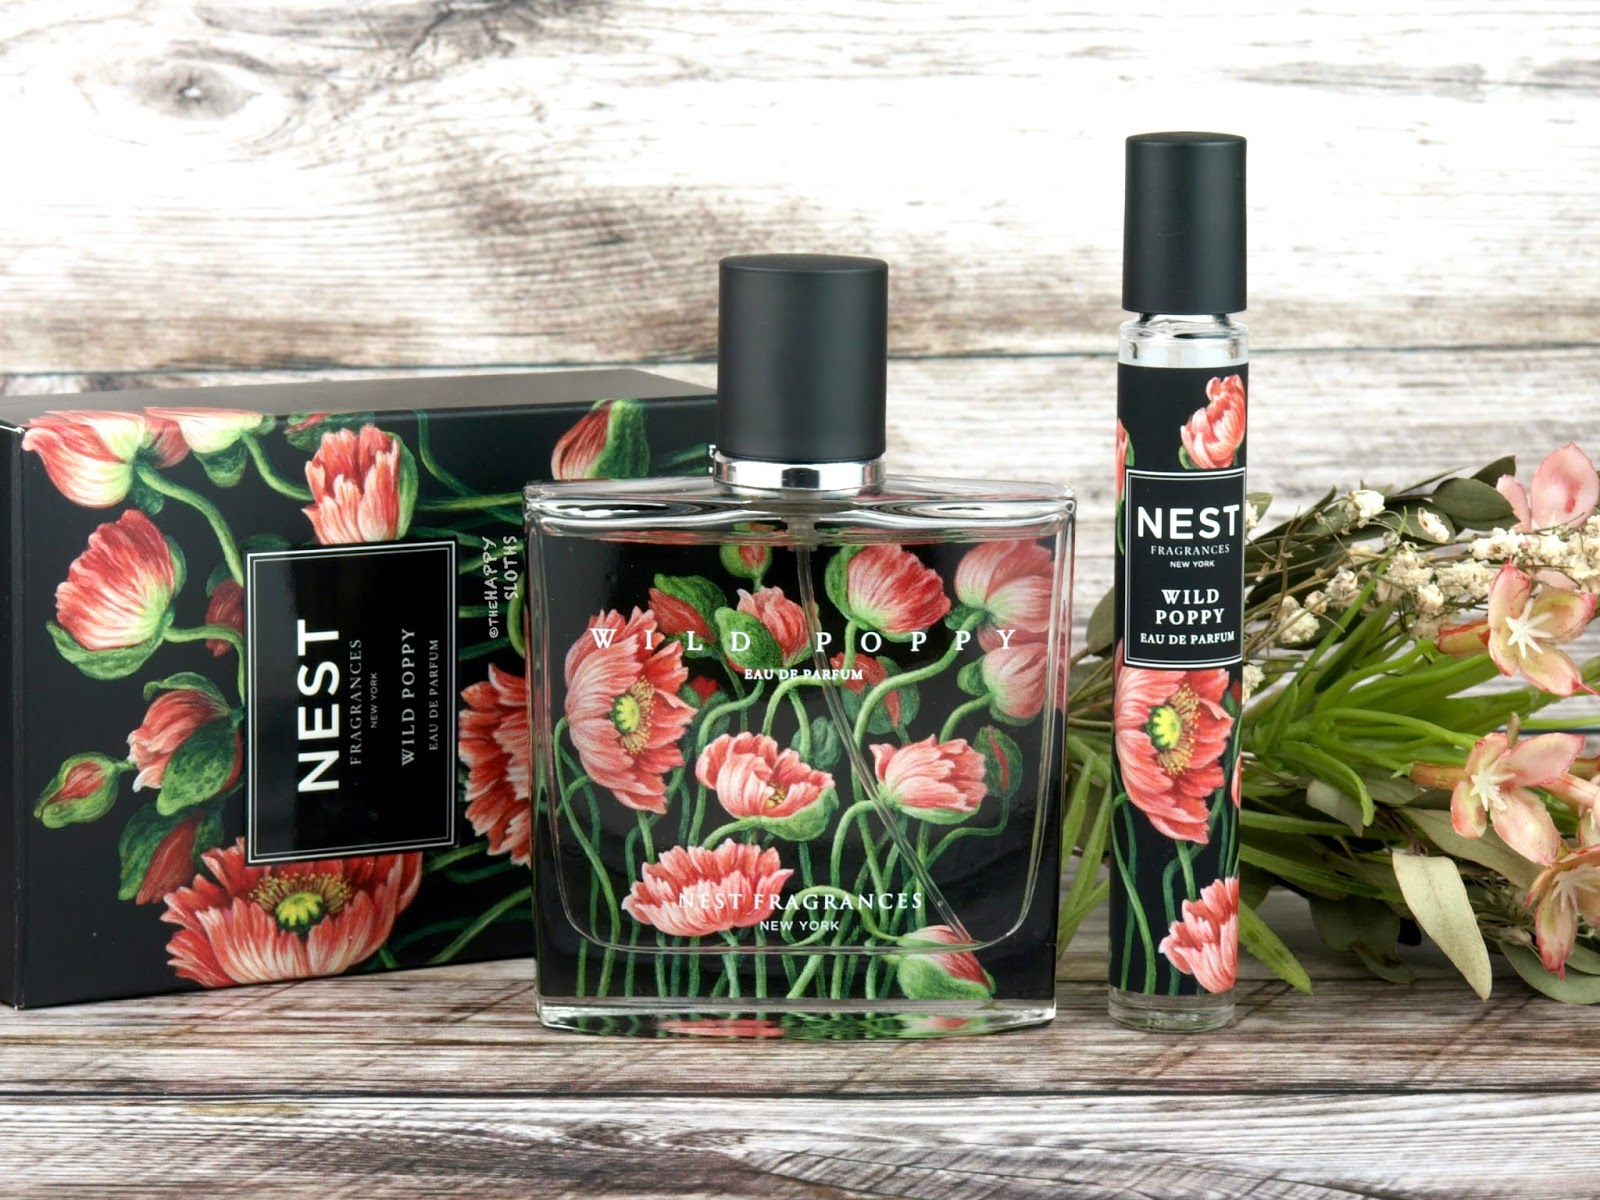 NEST Fragrances | Wild Poppy Eau de Parfum: Review